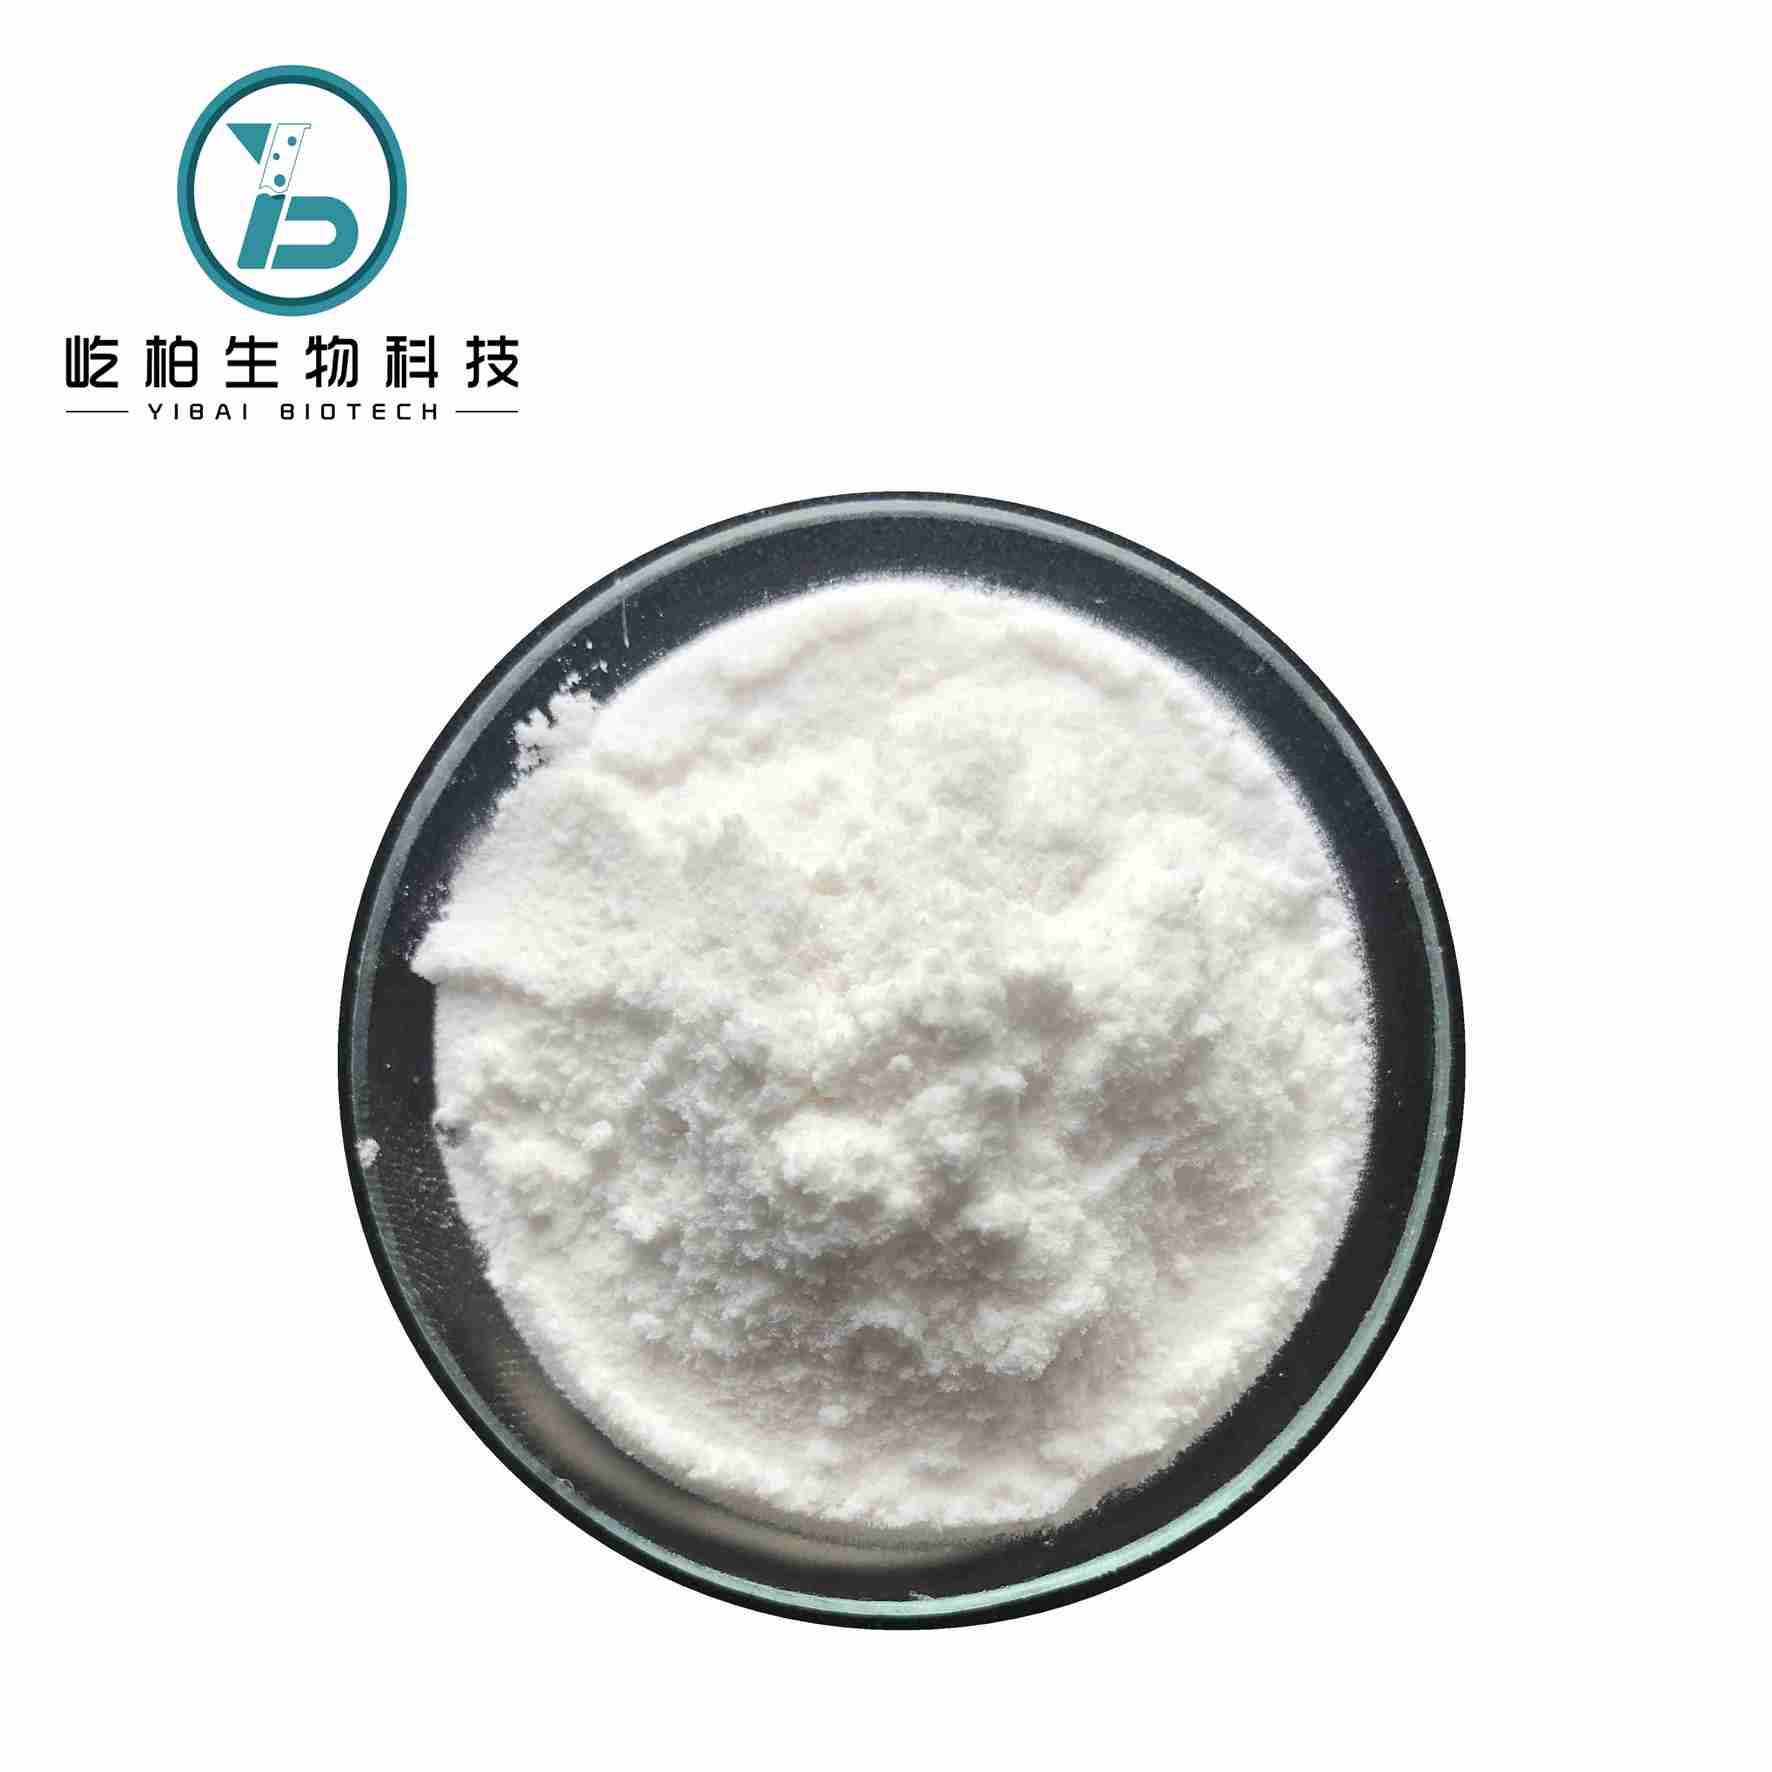 High Purity  Low Price Sildenafil citrate powder 171599-83-0 raw material